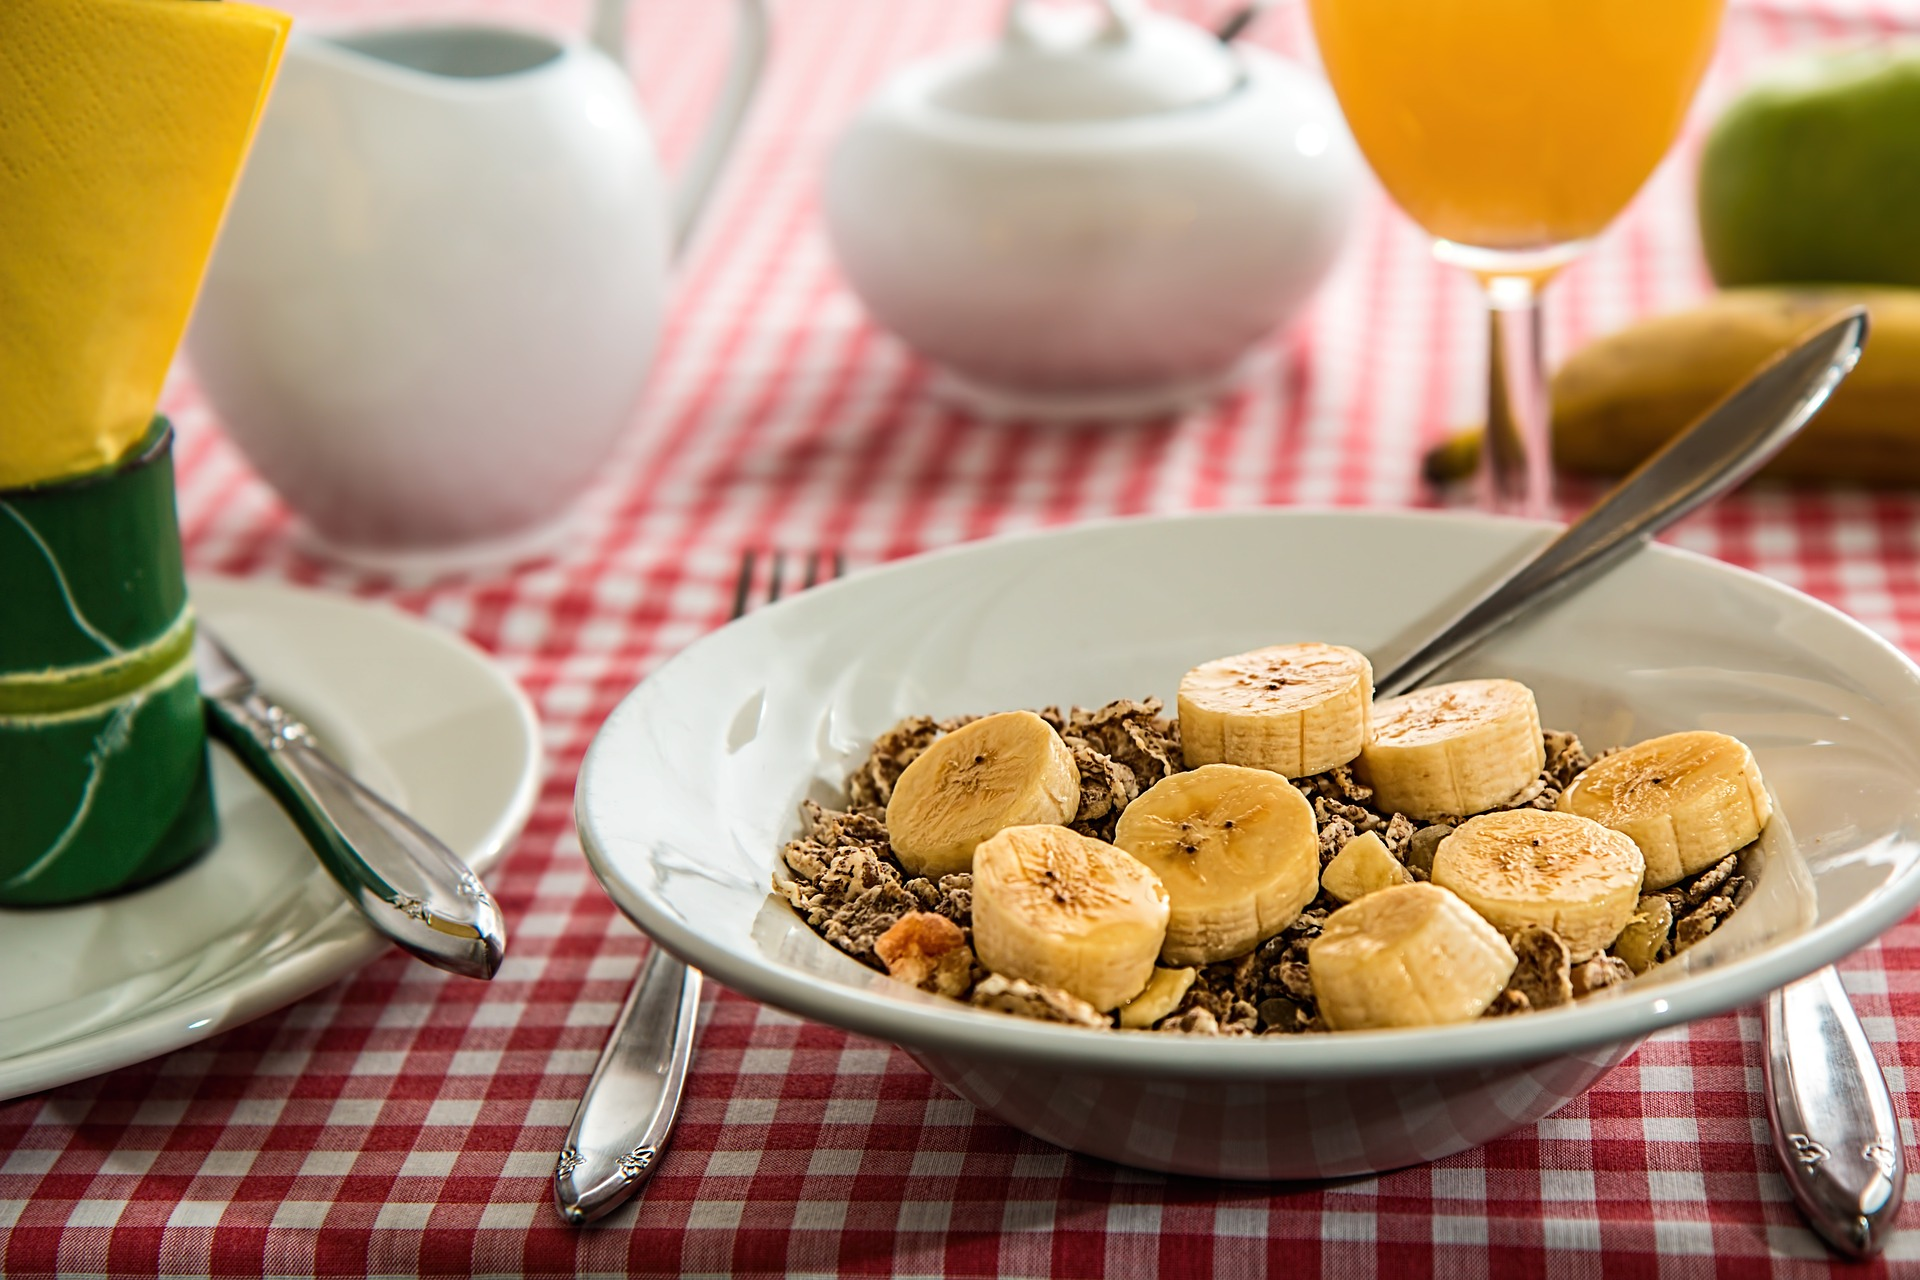 The Biorhythm of Breakfast: What is it and Why Does it Matter?